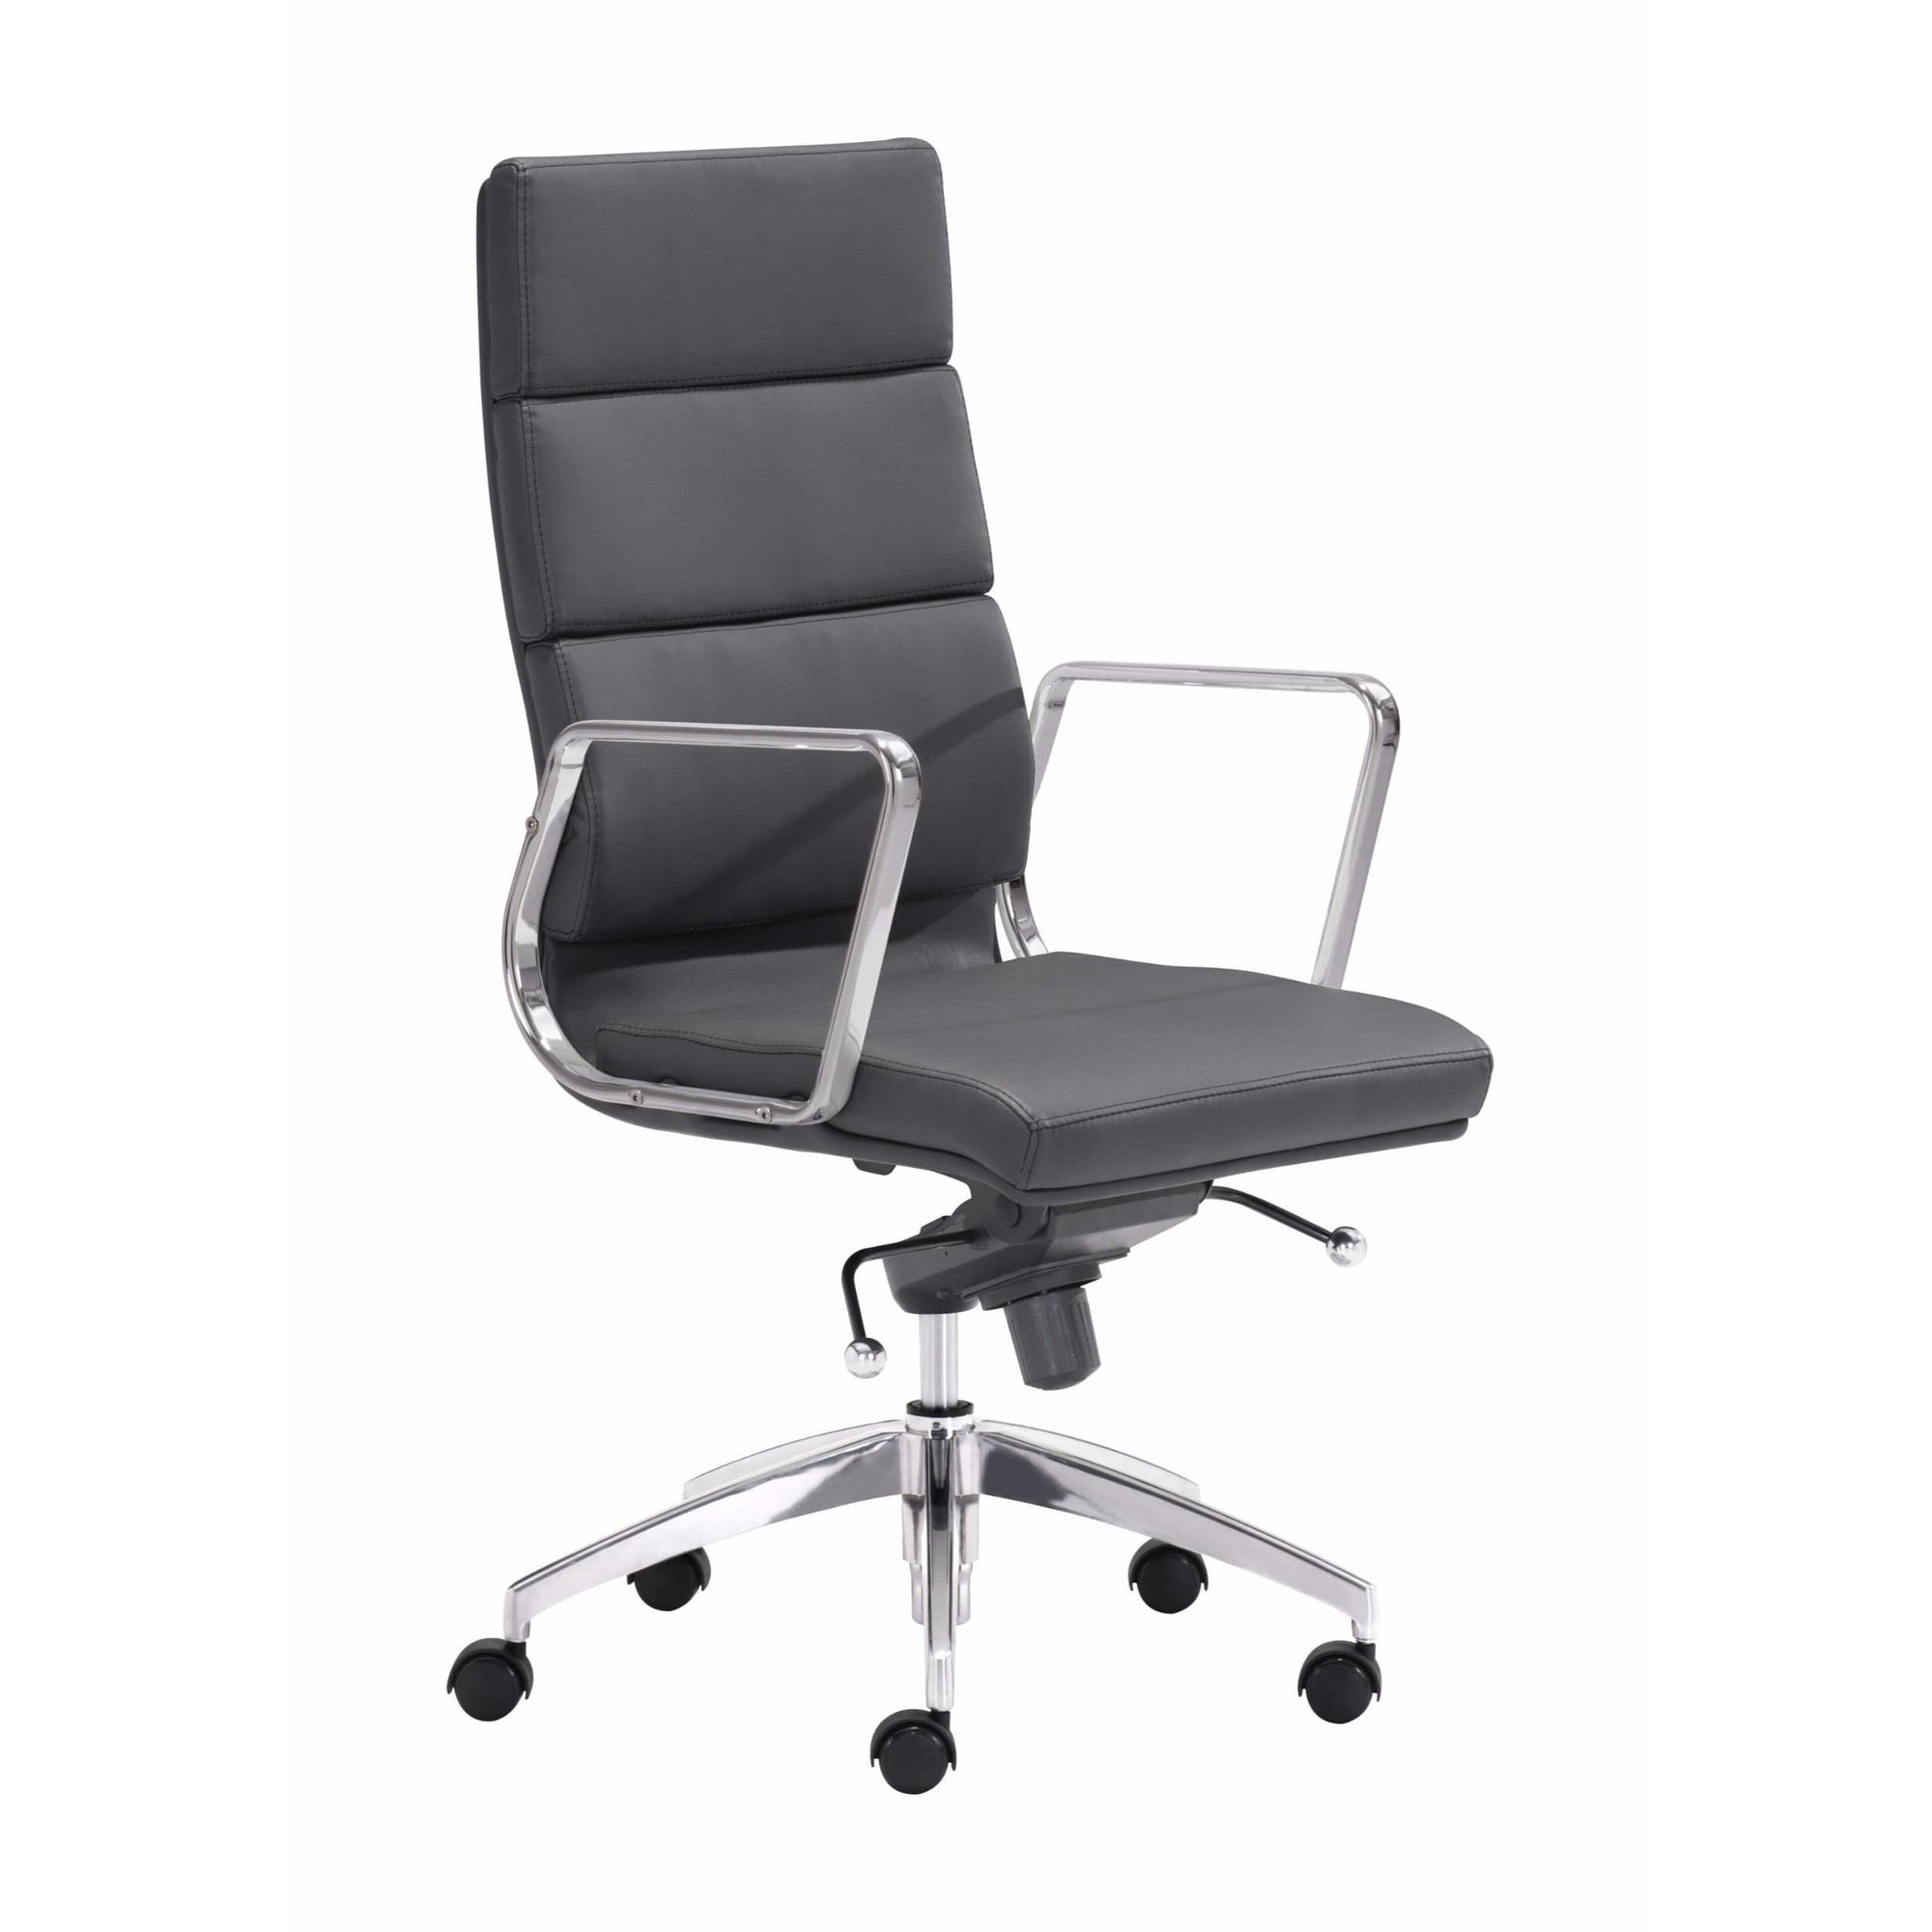 Engineer High Back Office Chair, Black – High Fashion Home